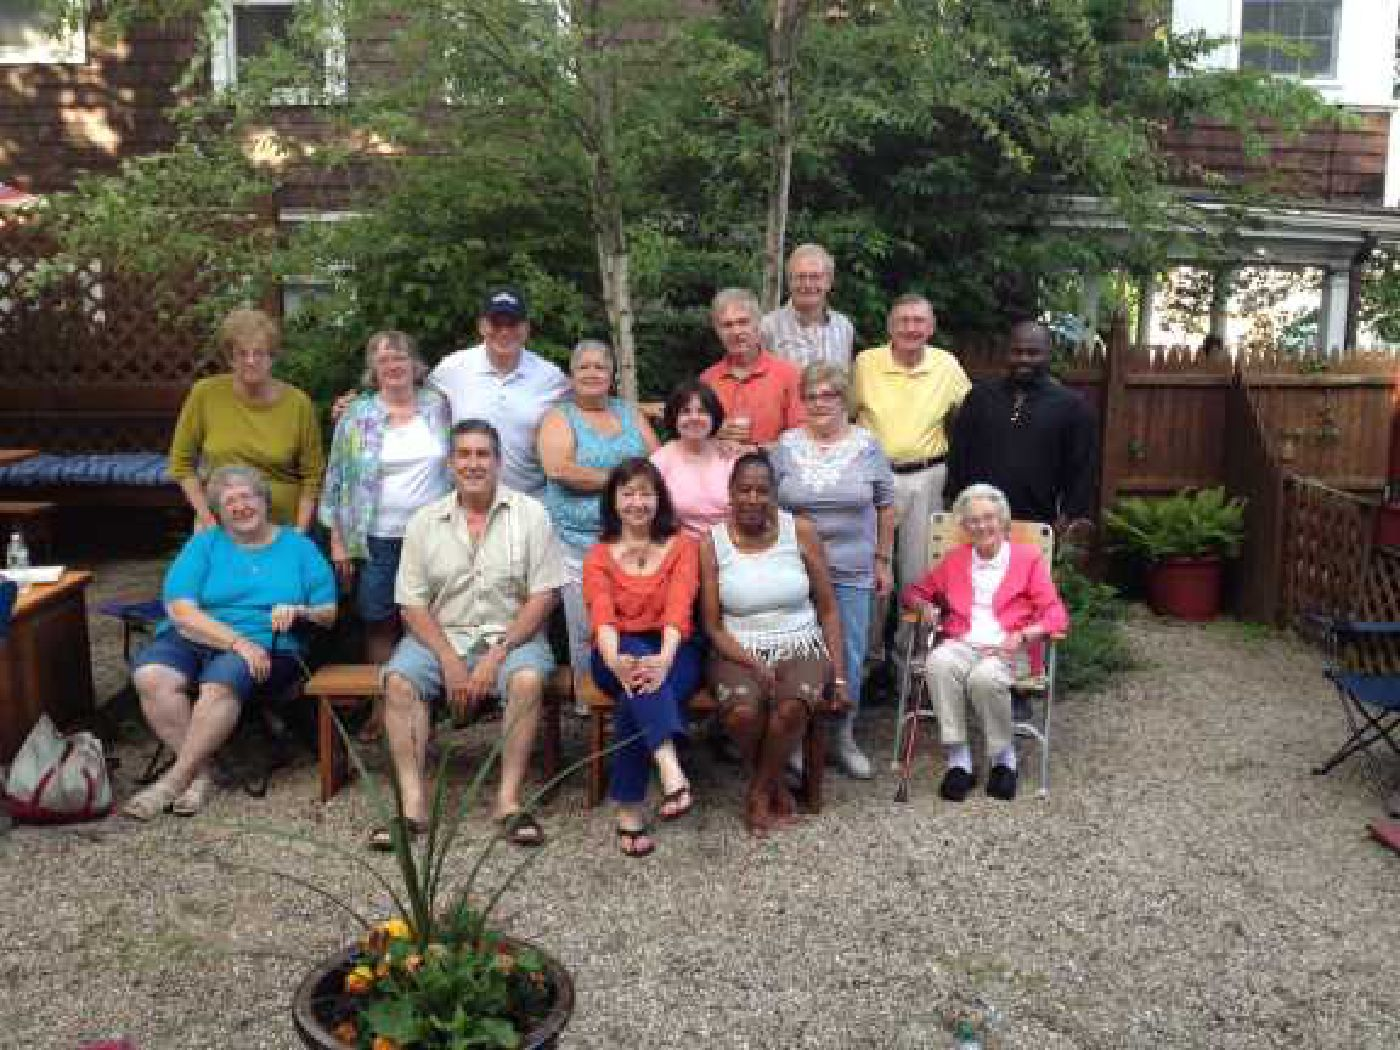 Peabody Slope neighborhood barbecue 2014